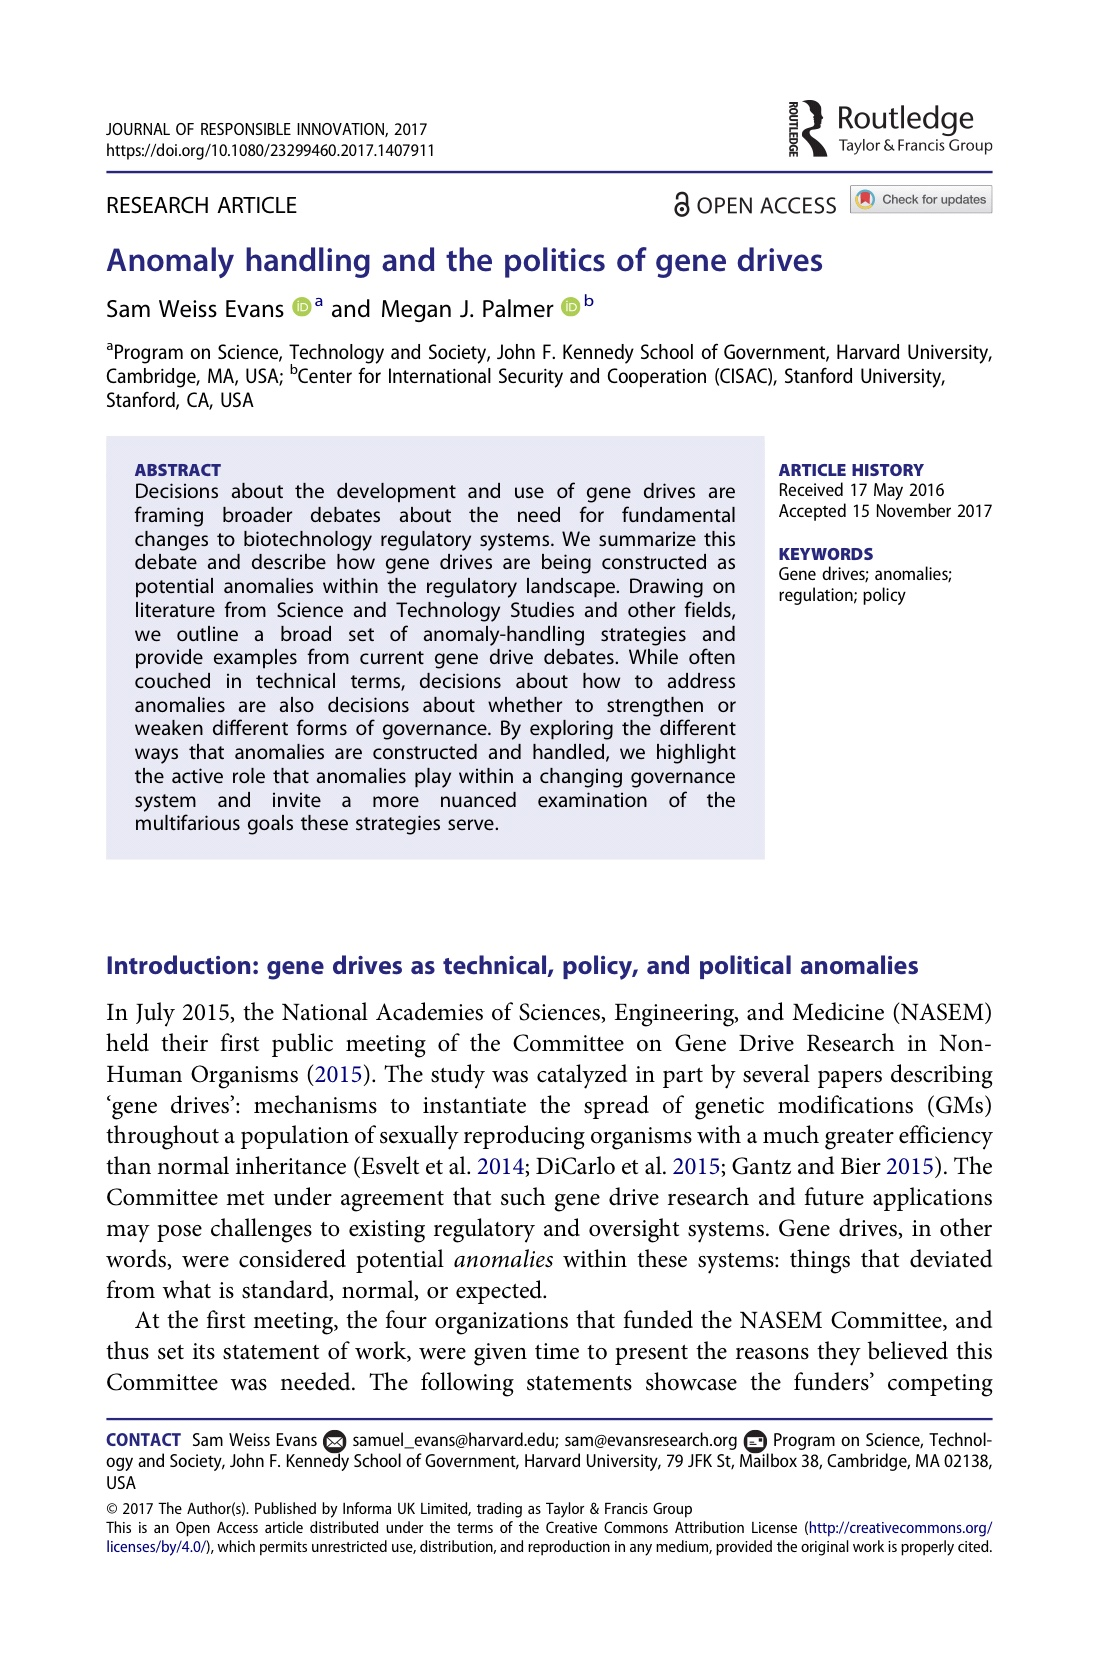 Anomaly Handling and the Politics of Gene Drives